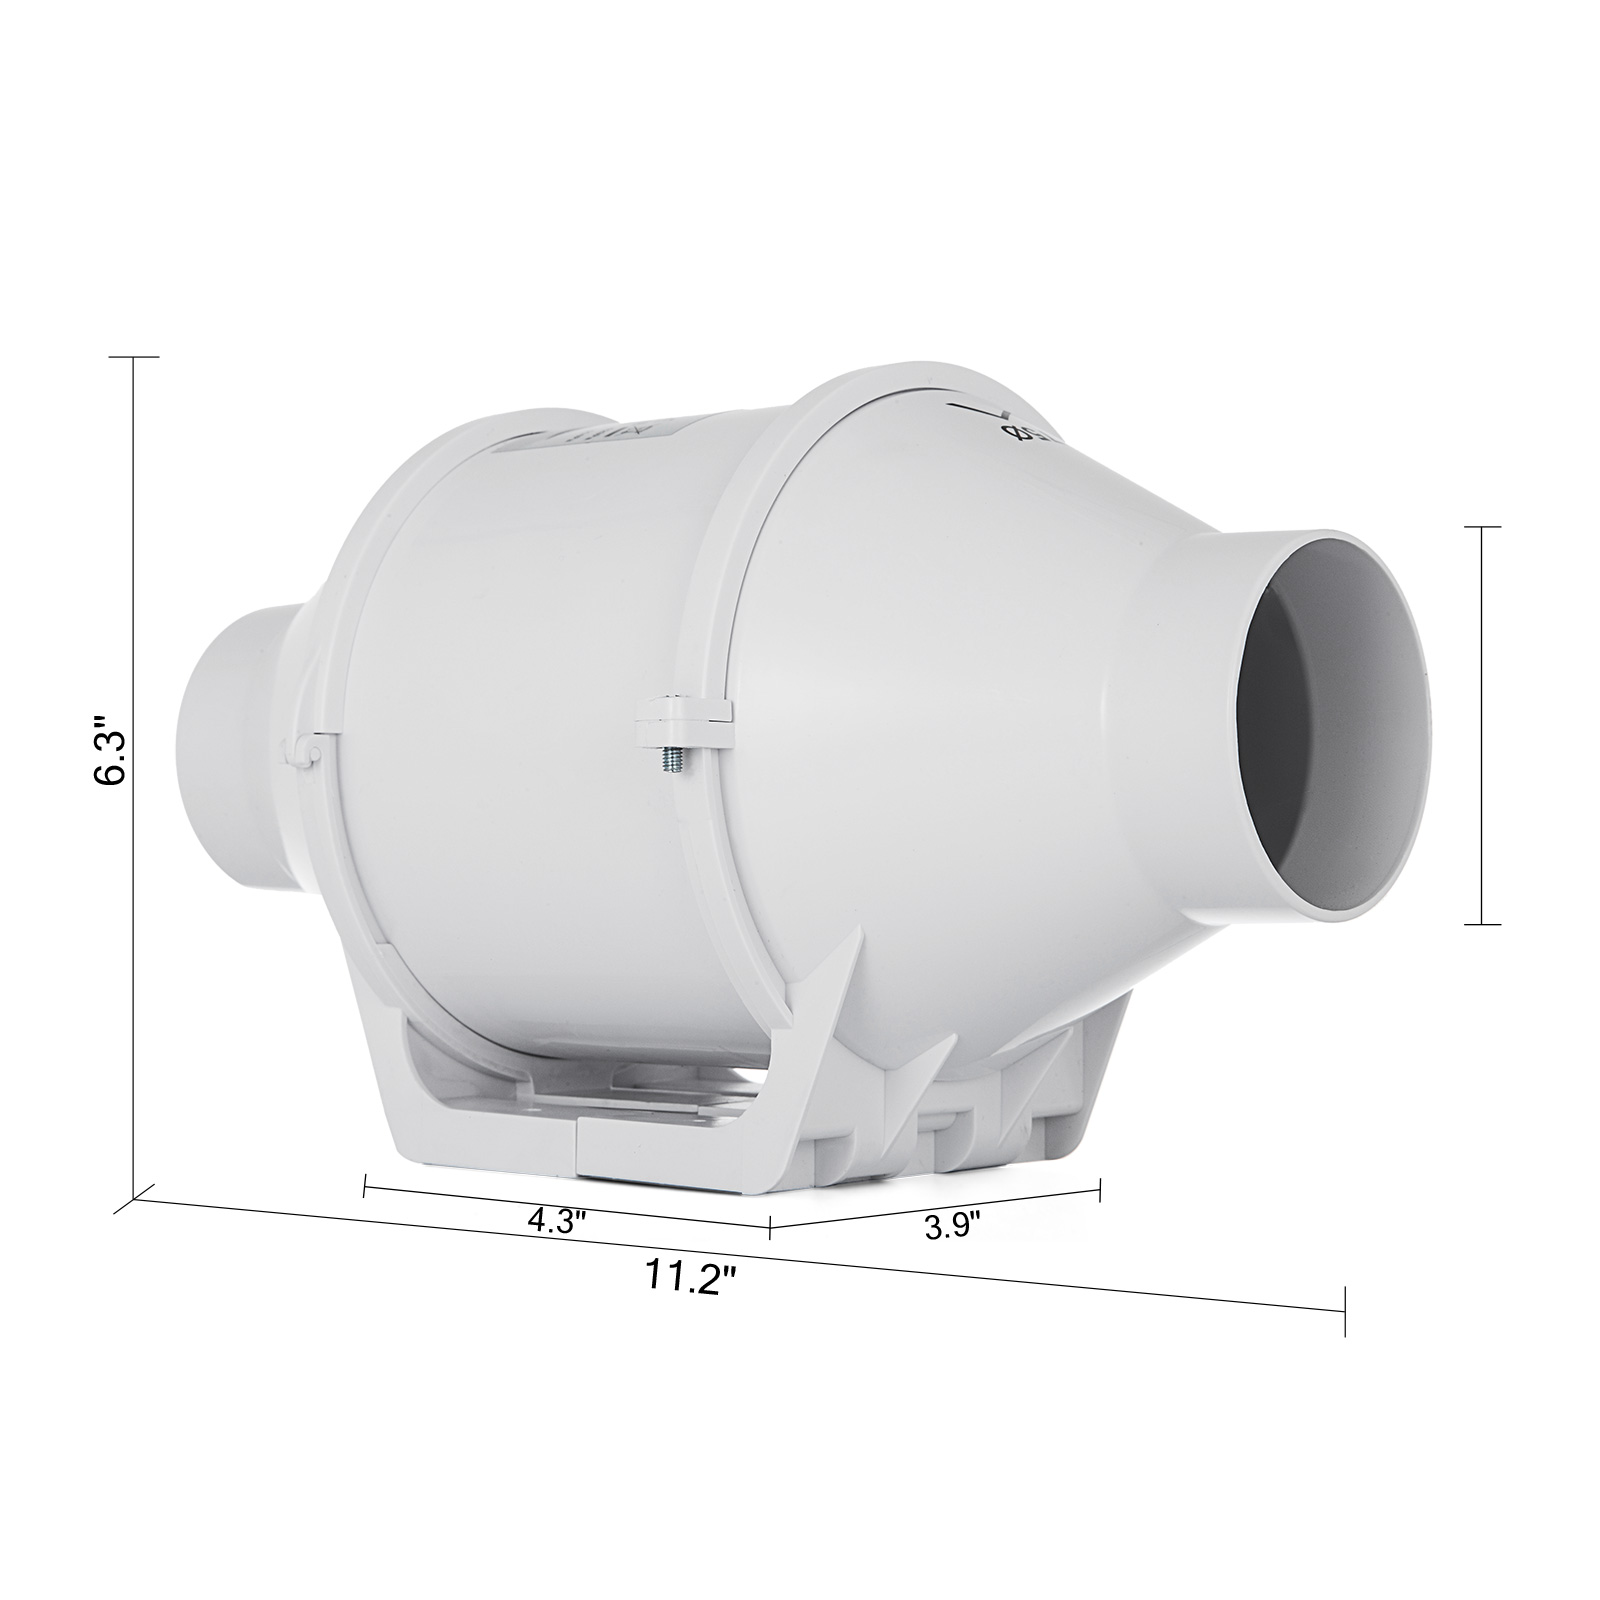 "High Flow Bathroom Exhaust Fan: 3"" Inch Inline Duct Booster Fan Ventilation Exhaust Air"